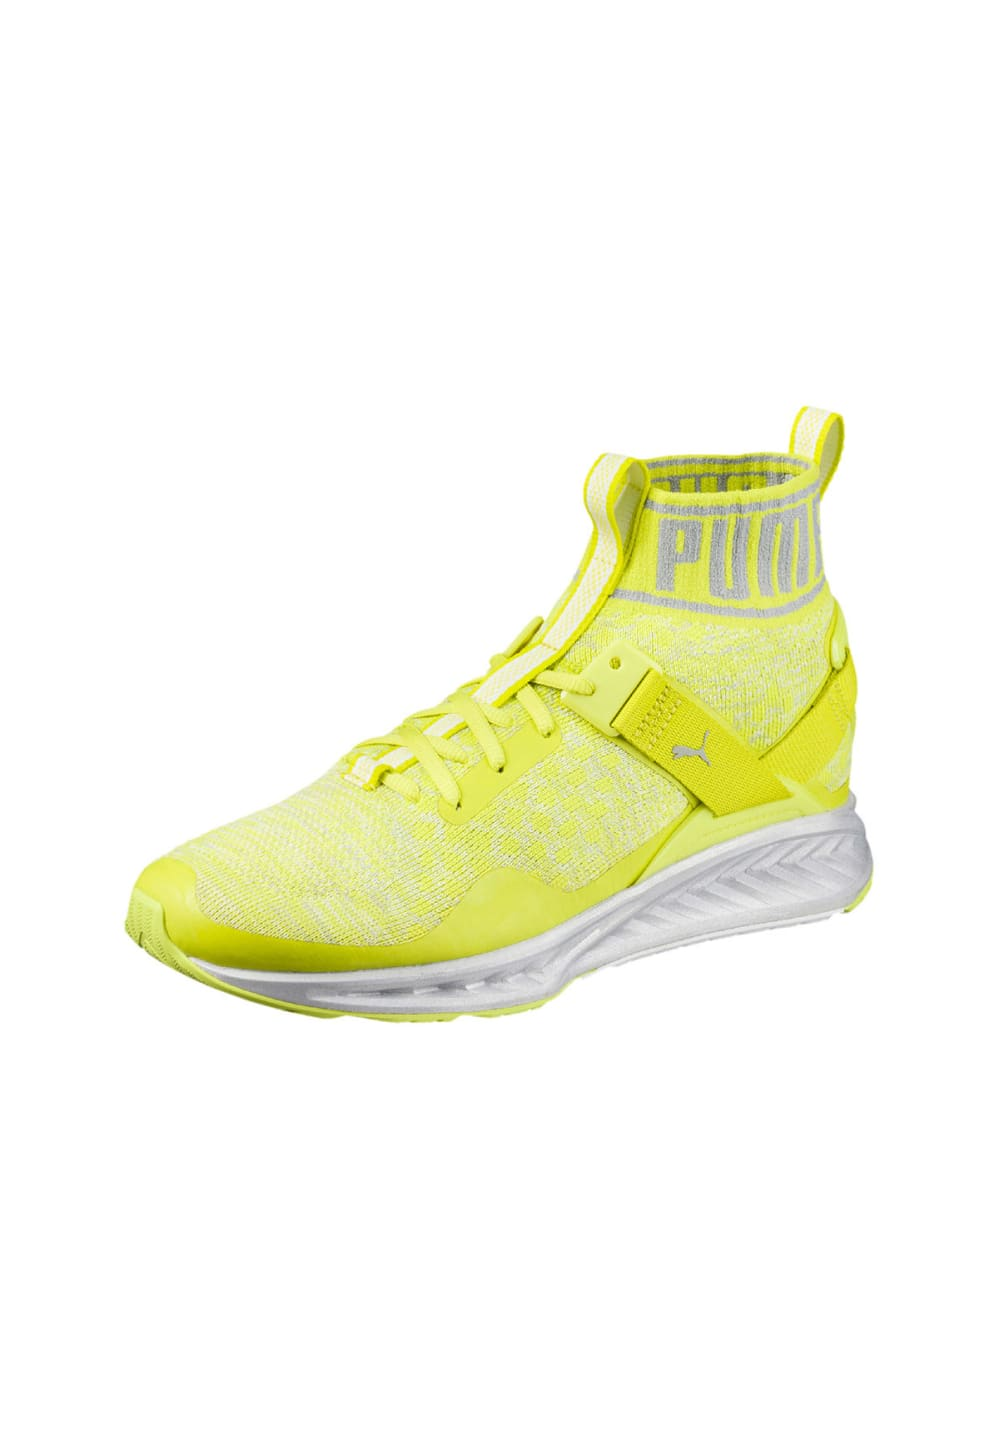 best website 14a70 f2509 Puma IGNITE evoKNIT NC - Running shoes for Men - Yellow